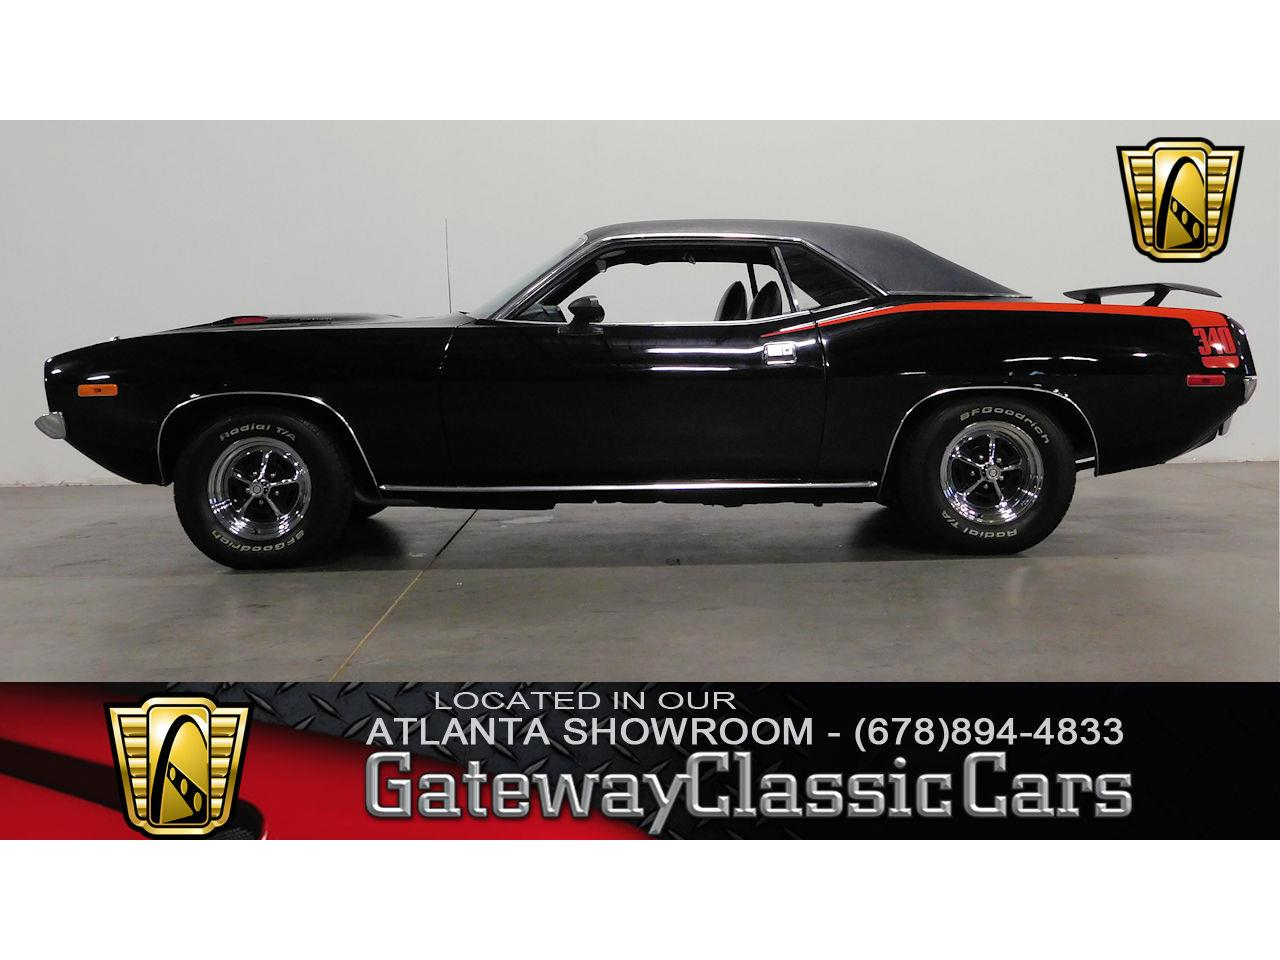 Large Picture of 1972 Plymouth Barracuda located in Alpharetta Georgia - $44,995.00 - MZG1